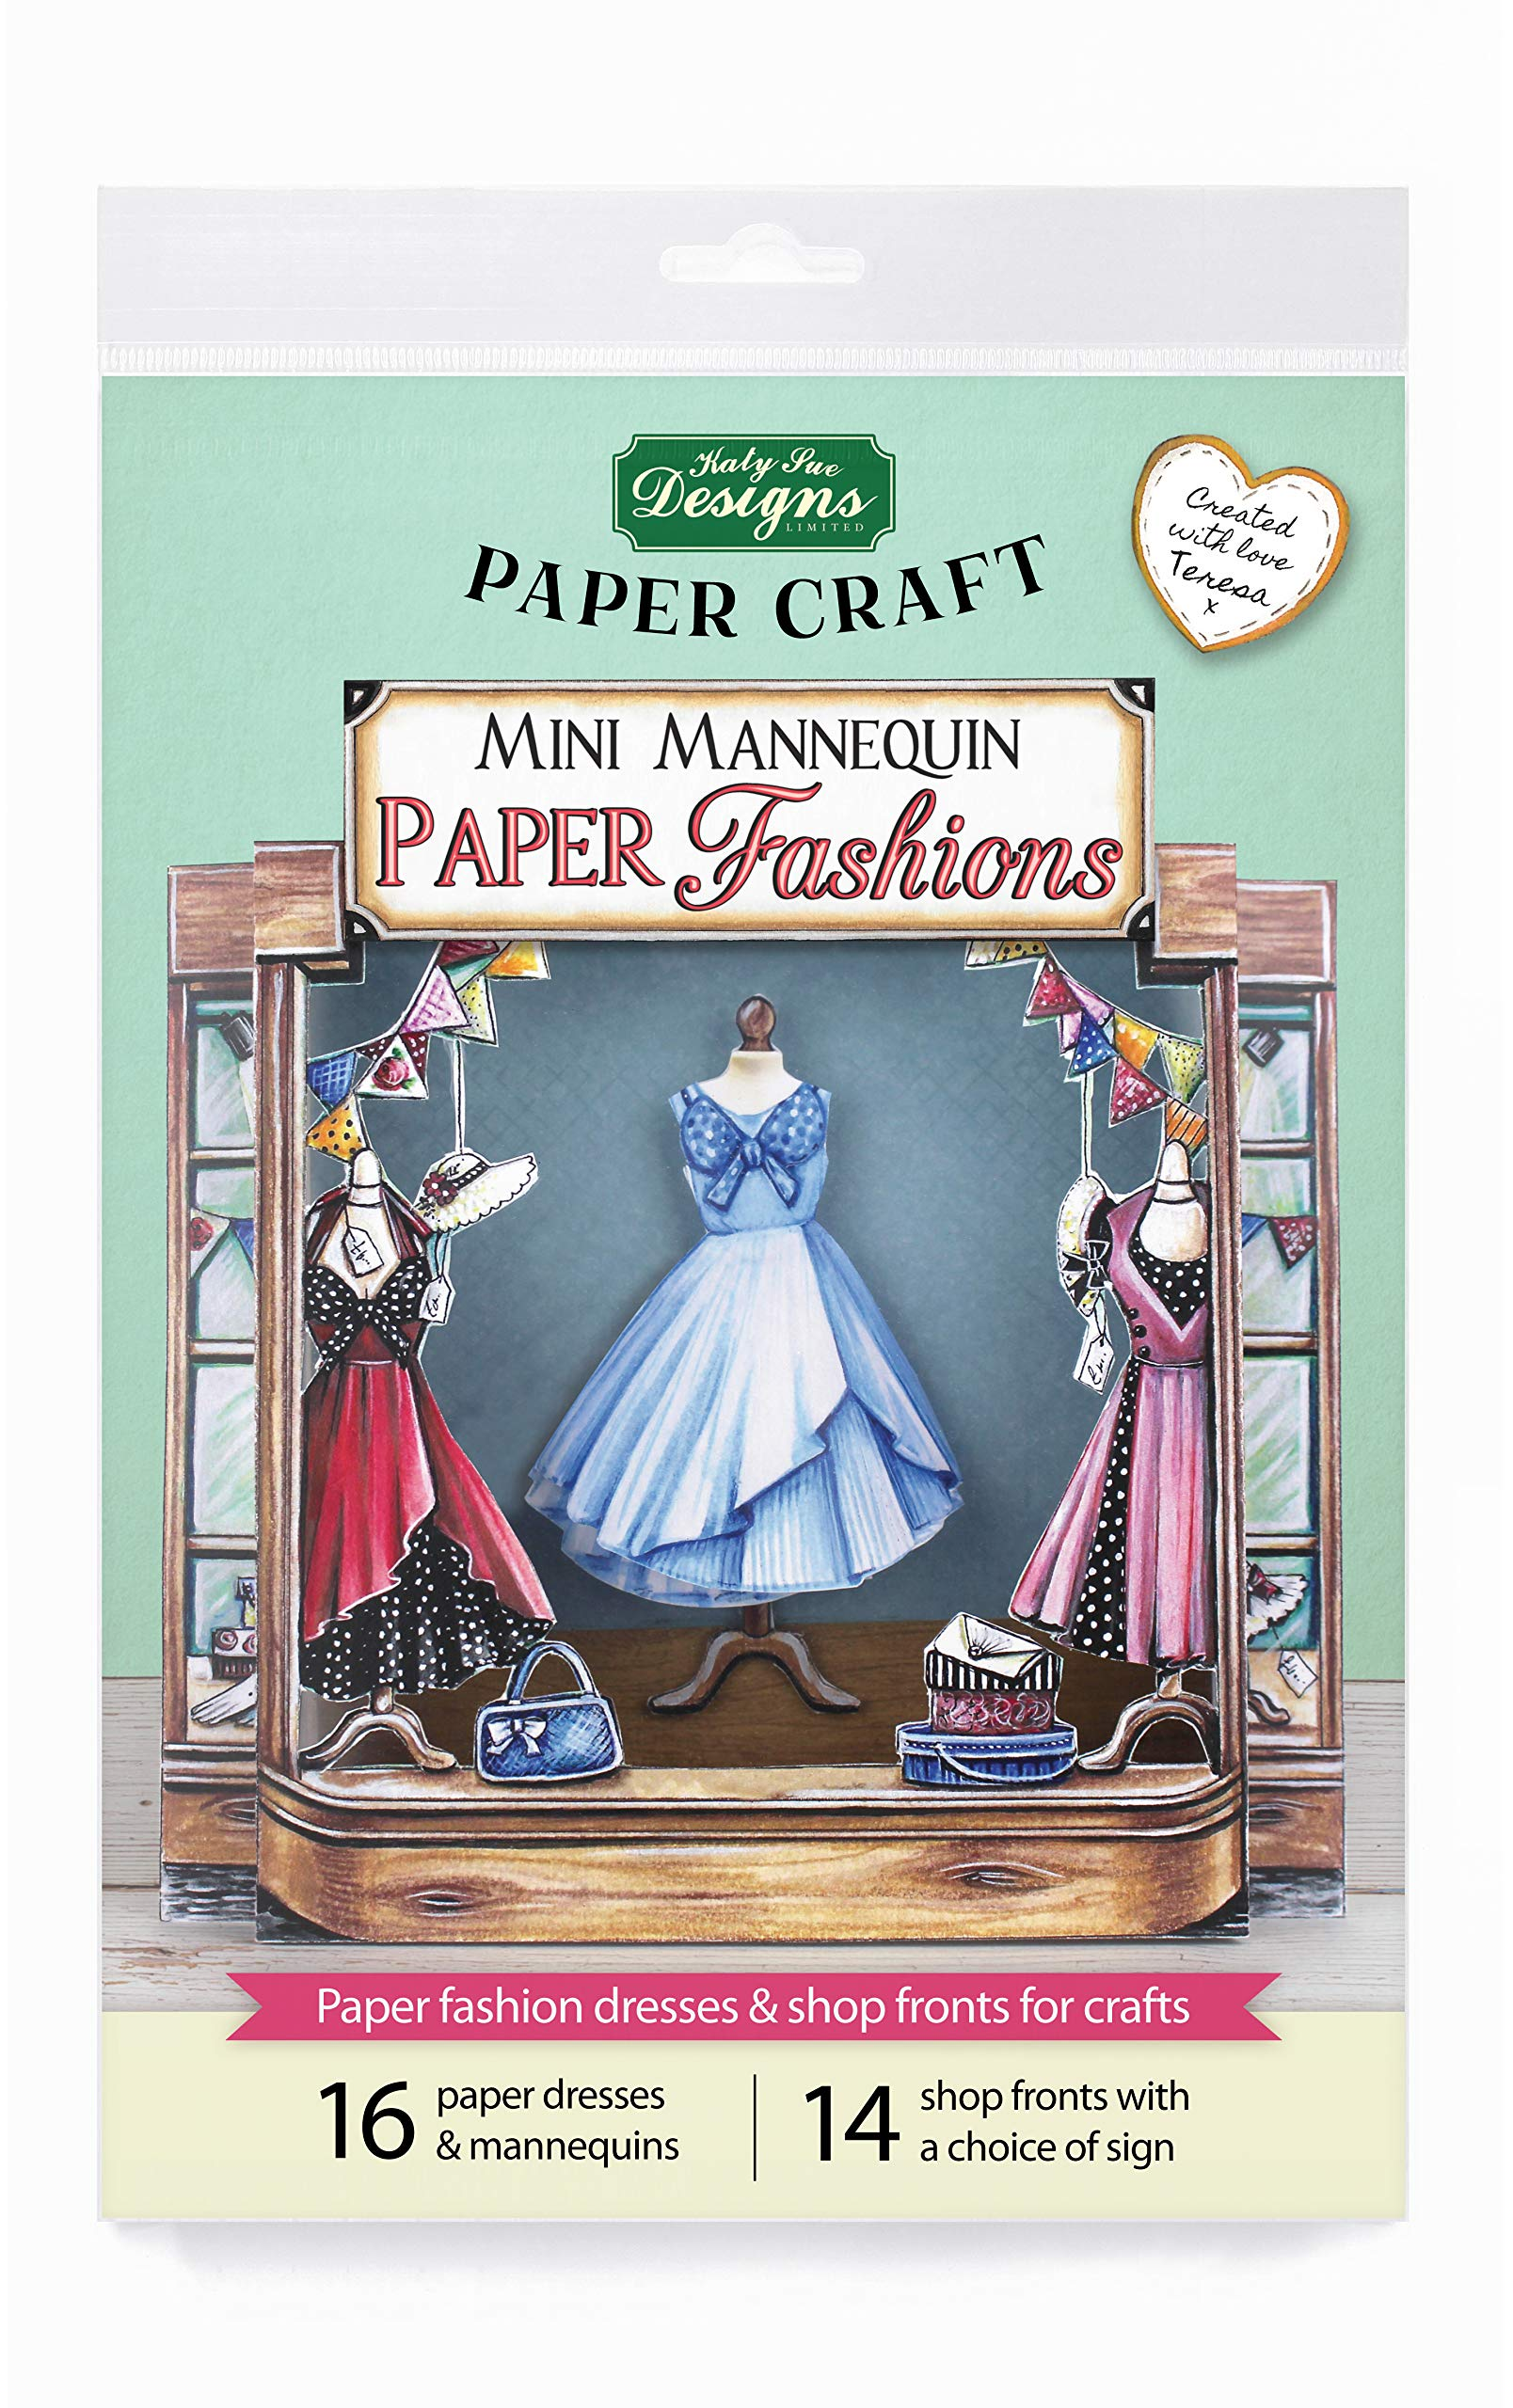 Mini Mannequin Paper Fashions, Paper Craft and Card Making Kit, Makes 80 Card Toppers, Works with Dies